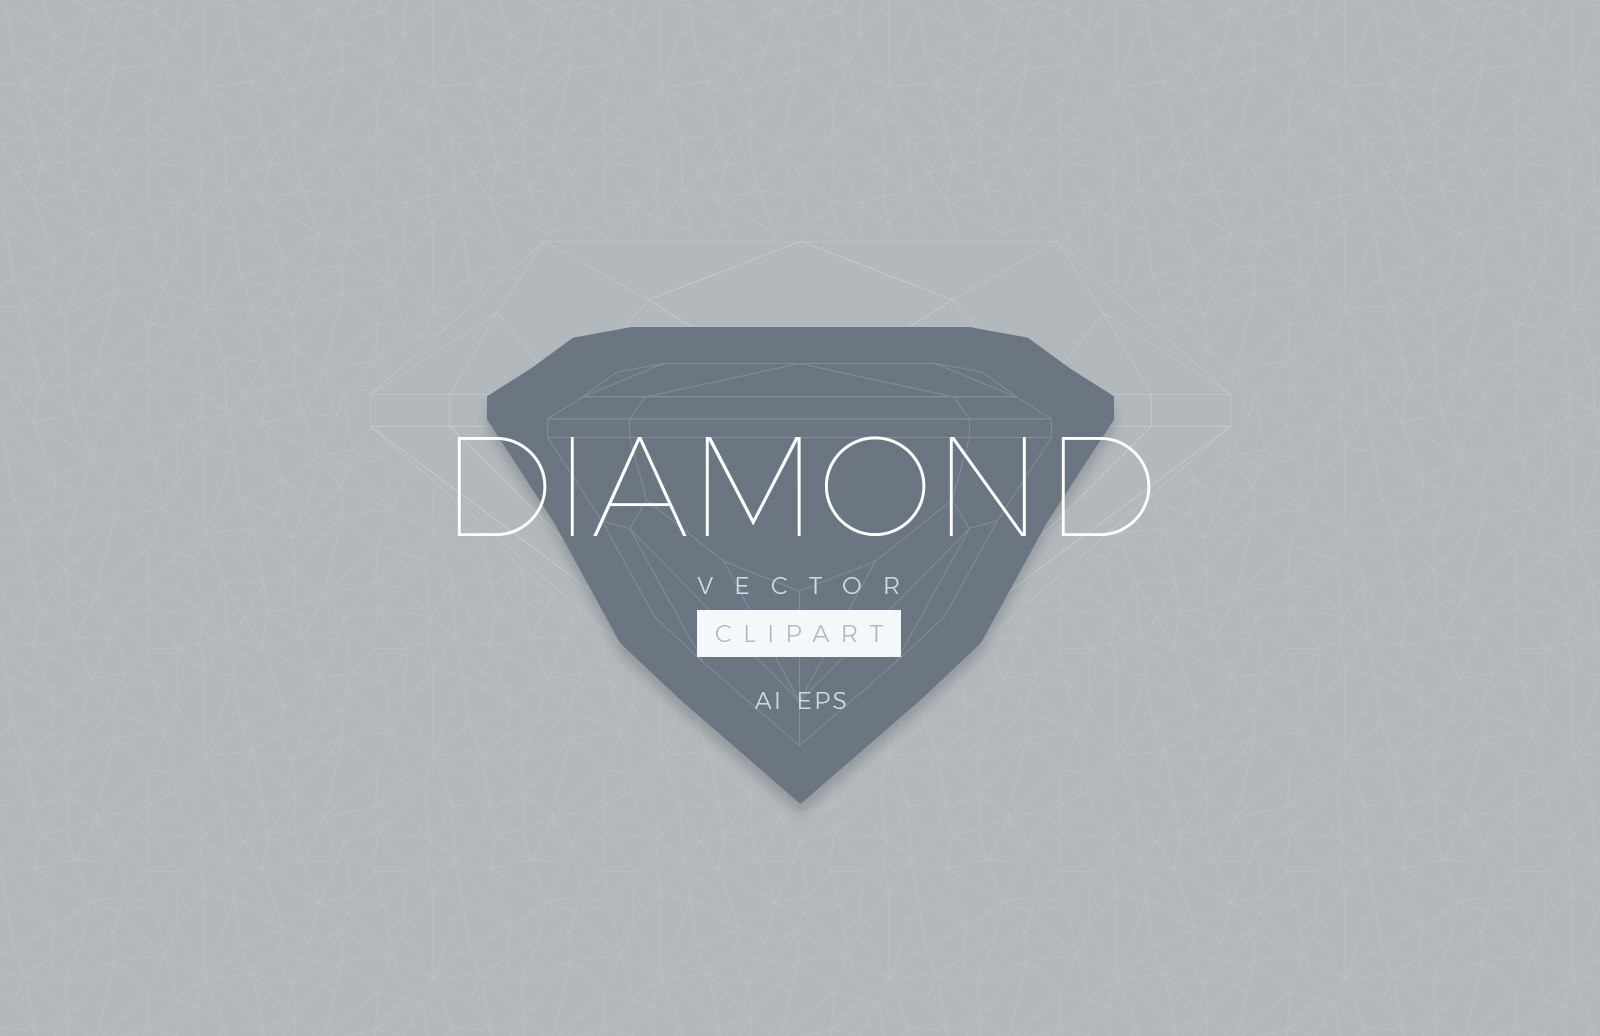 Diamond Vector Clipart.